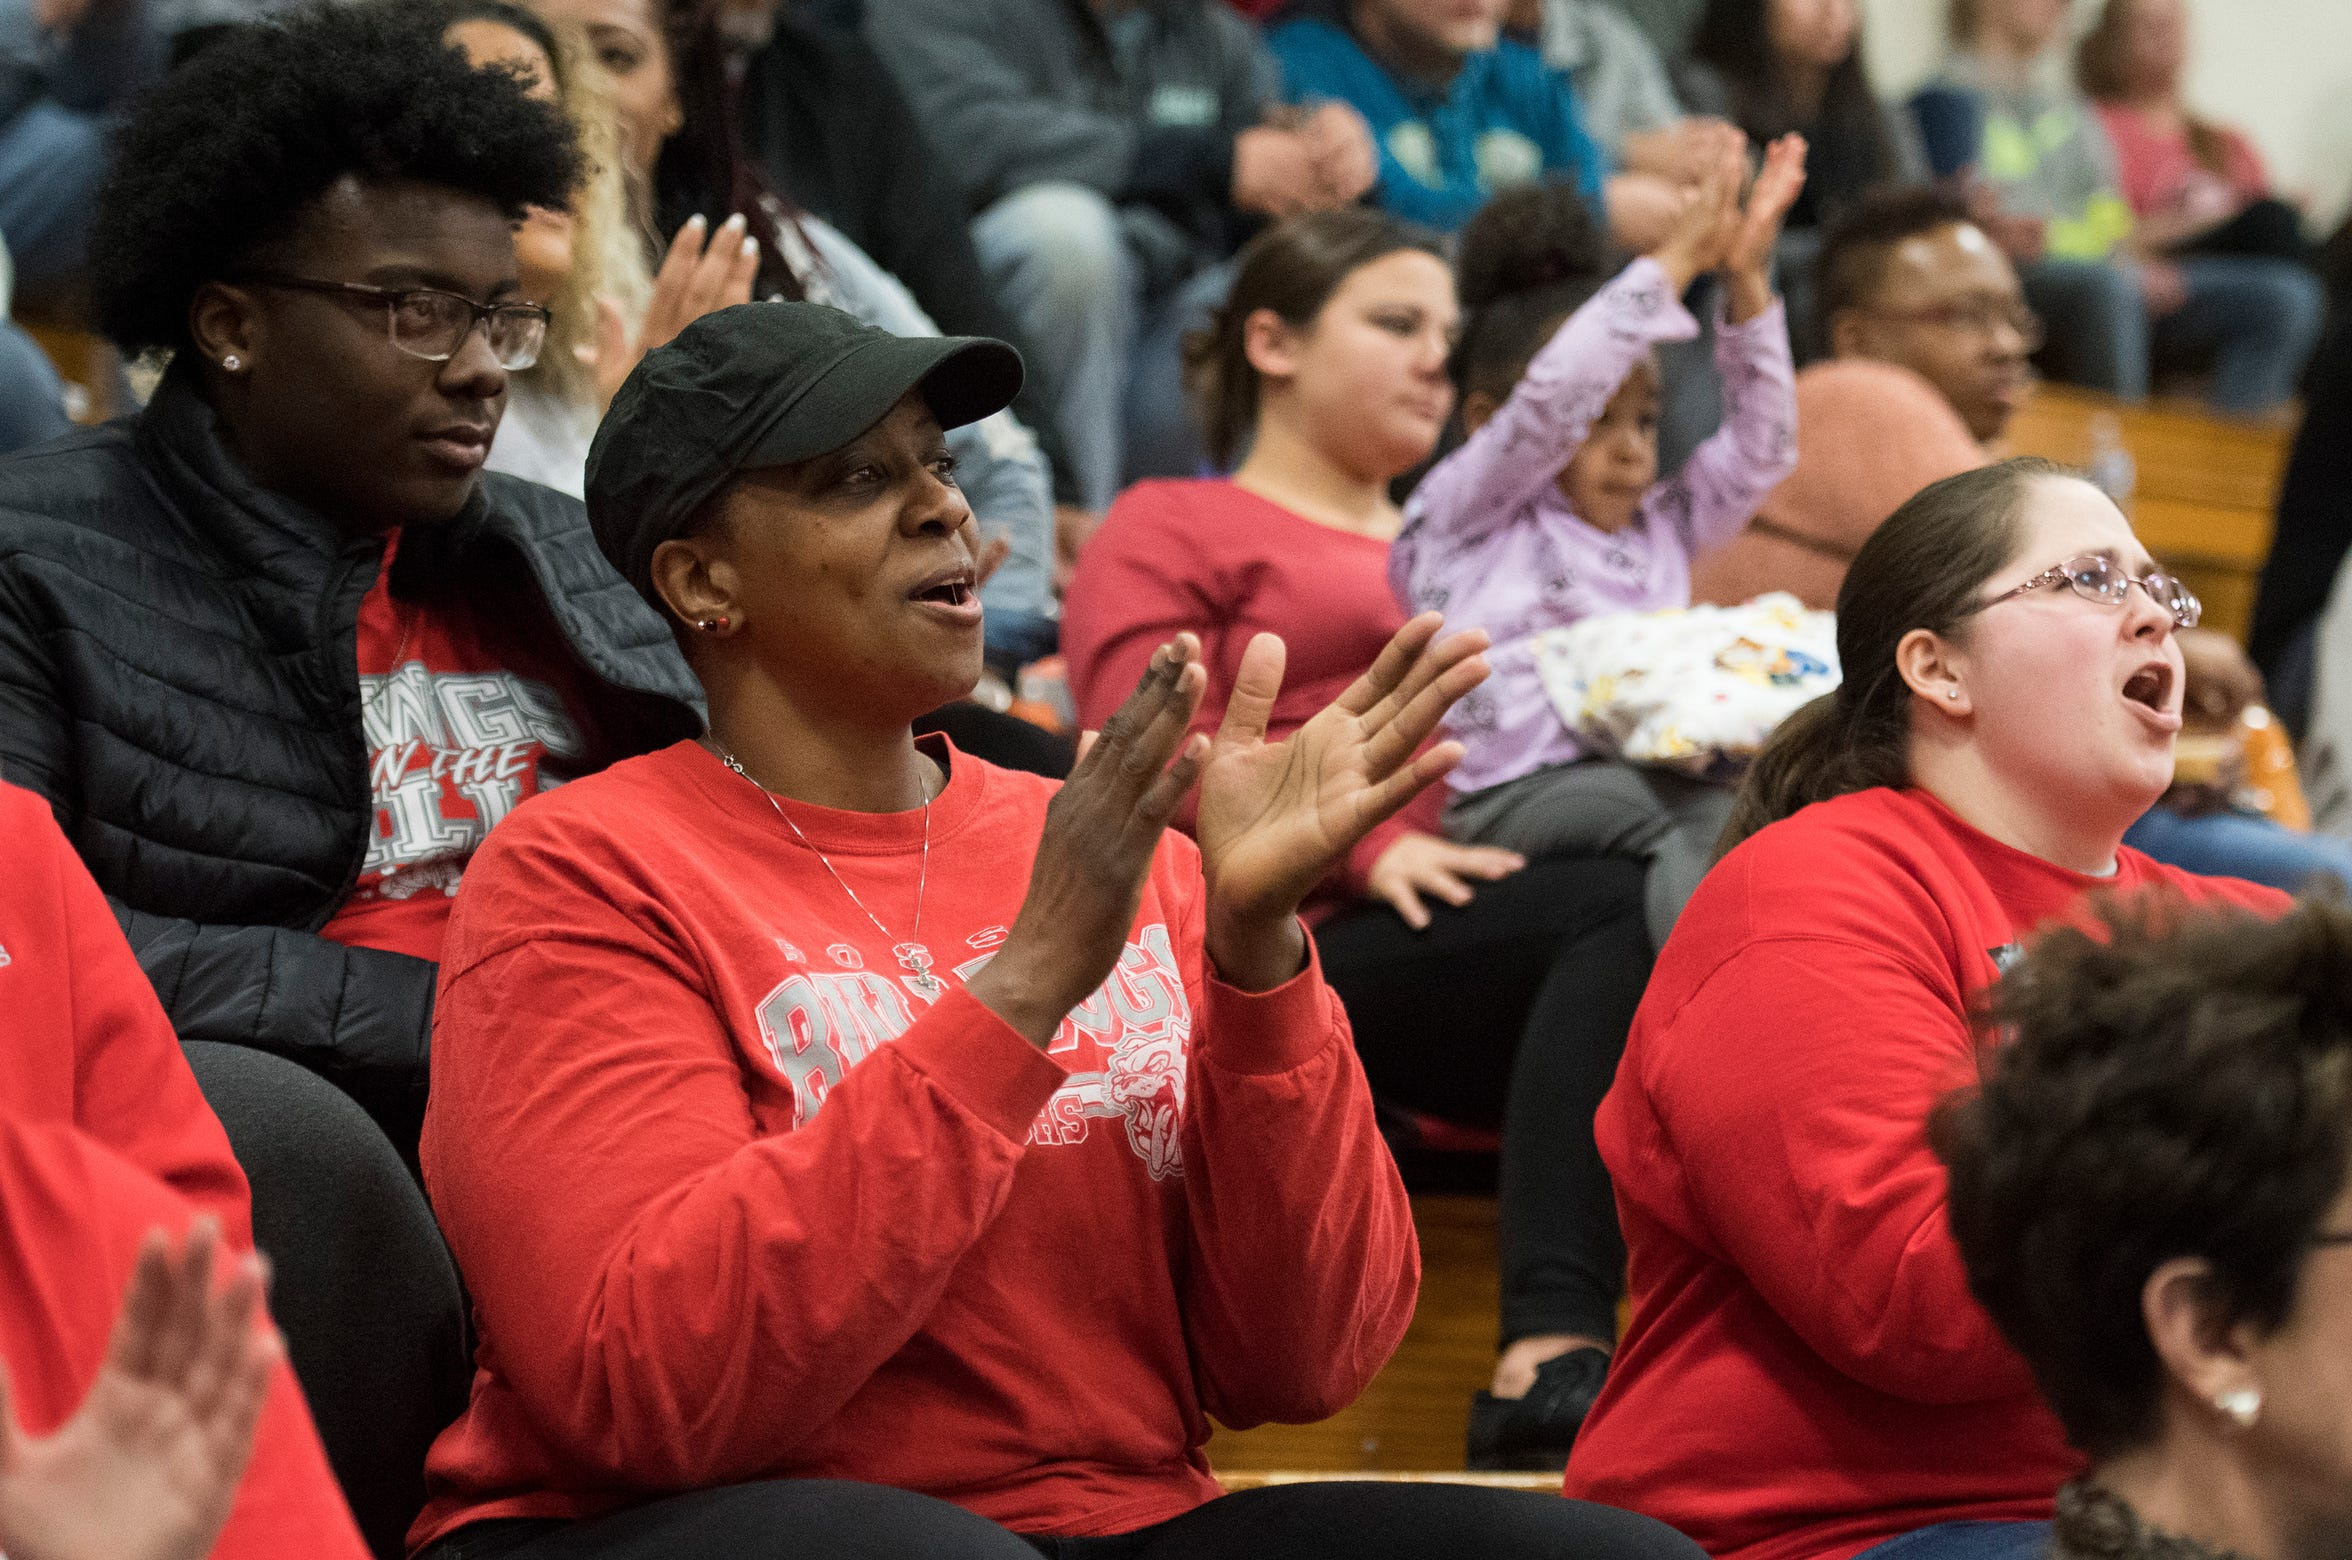 Teresa Higgins, mother of Bosse High School junior Kiyron Powell cheers on the Bulldogs during the Memorial vs Bosse game Tuesday, Dec. 11, 2018.